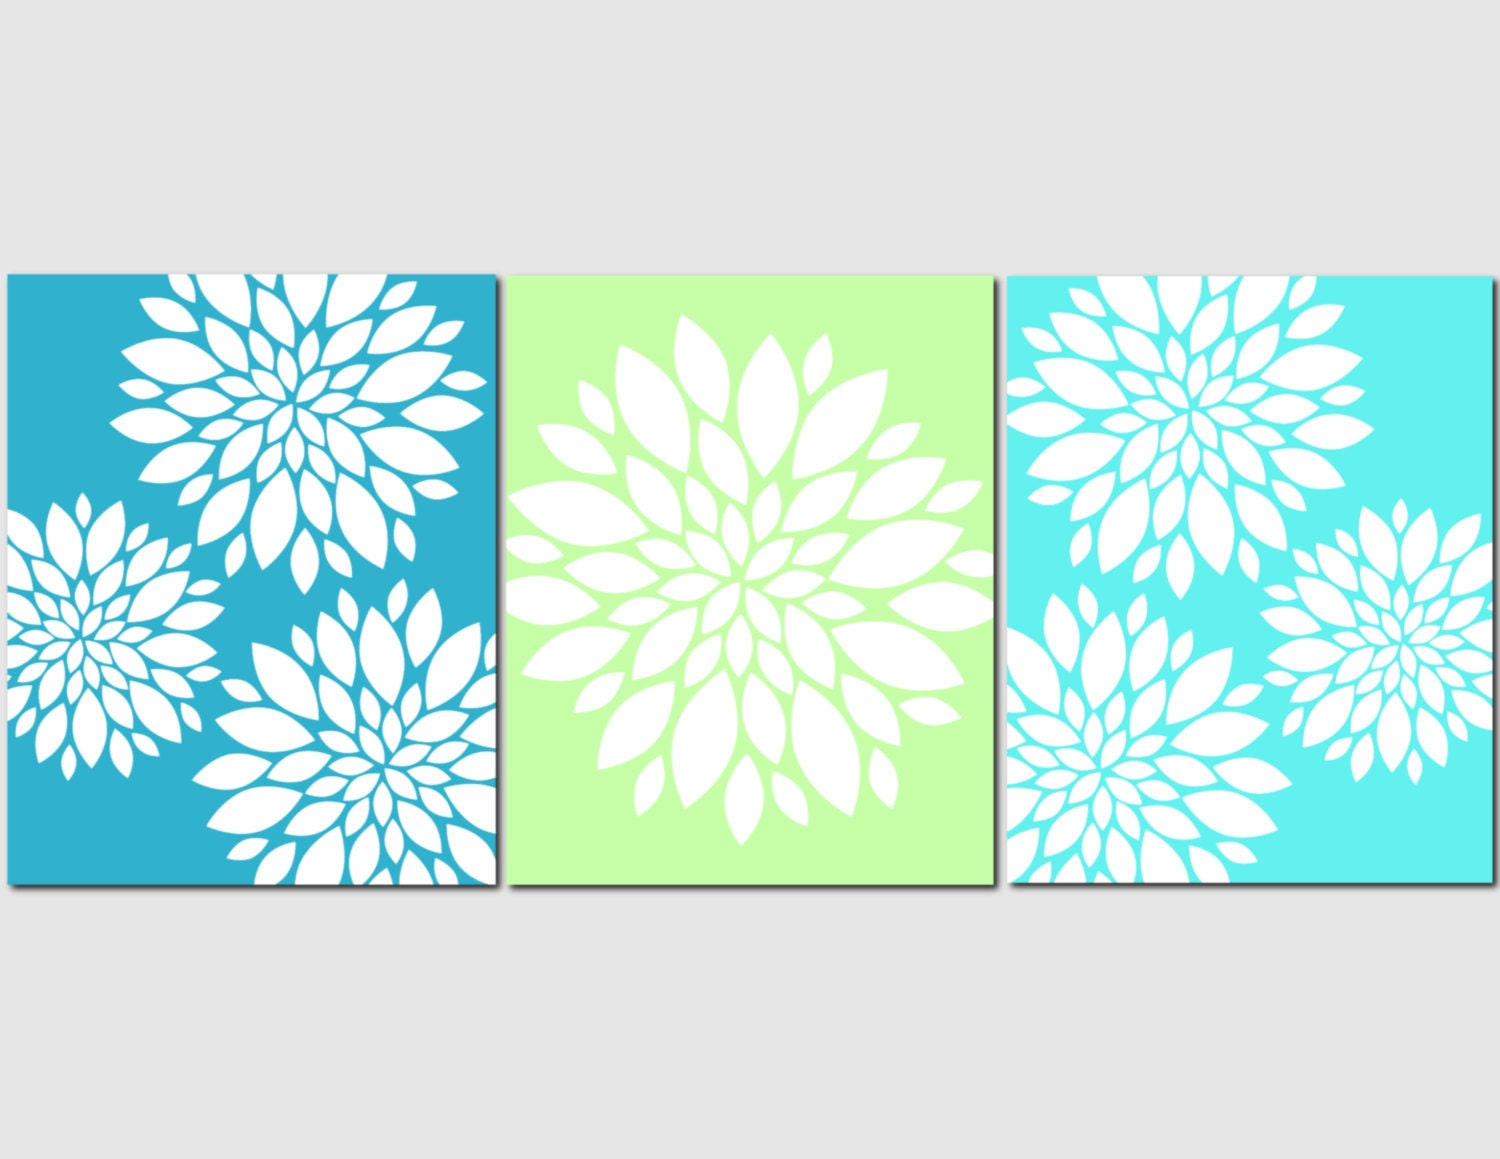 teal wall decor aqua teal lime green wall art home decor flower burst floral